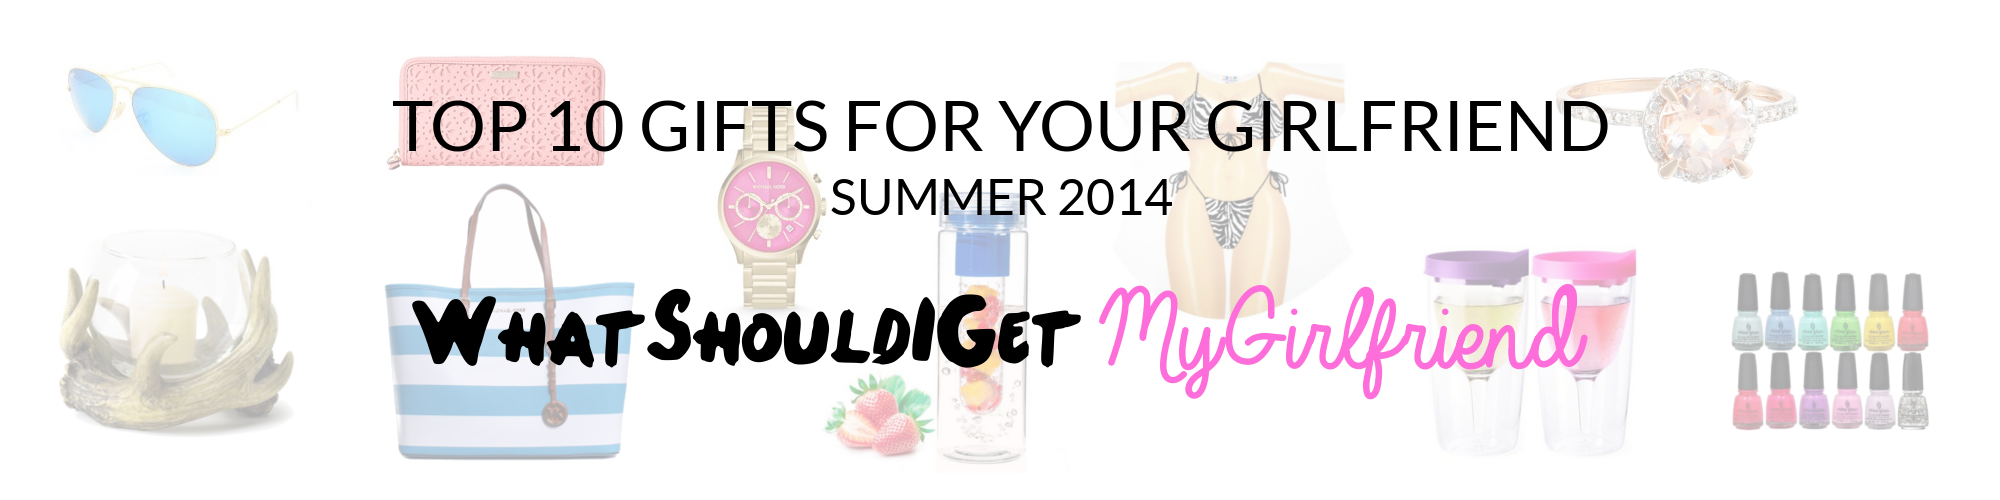 Top Ten Gifts for Your Girlfriend – Summer 2014 Edition